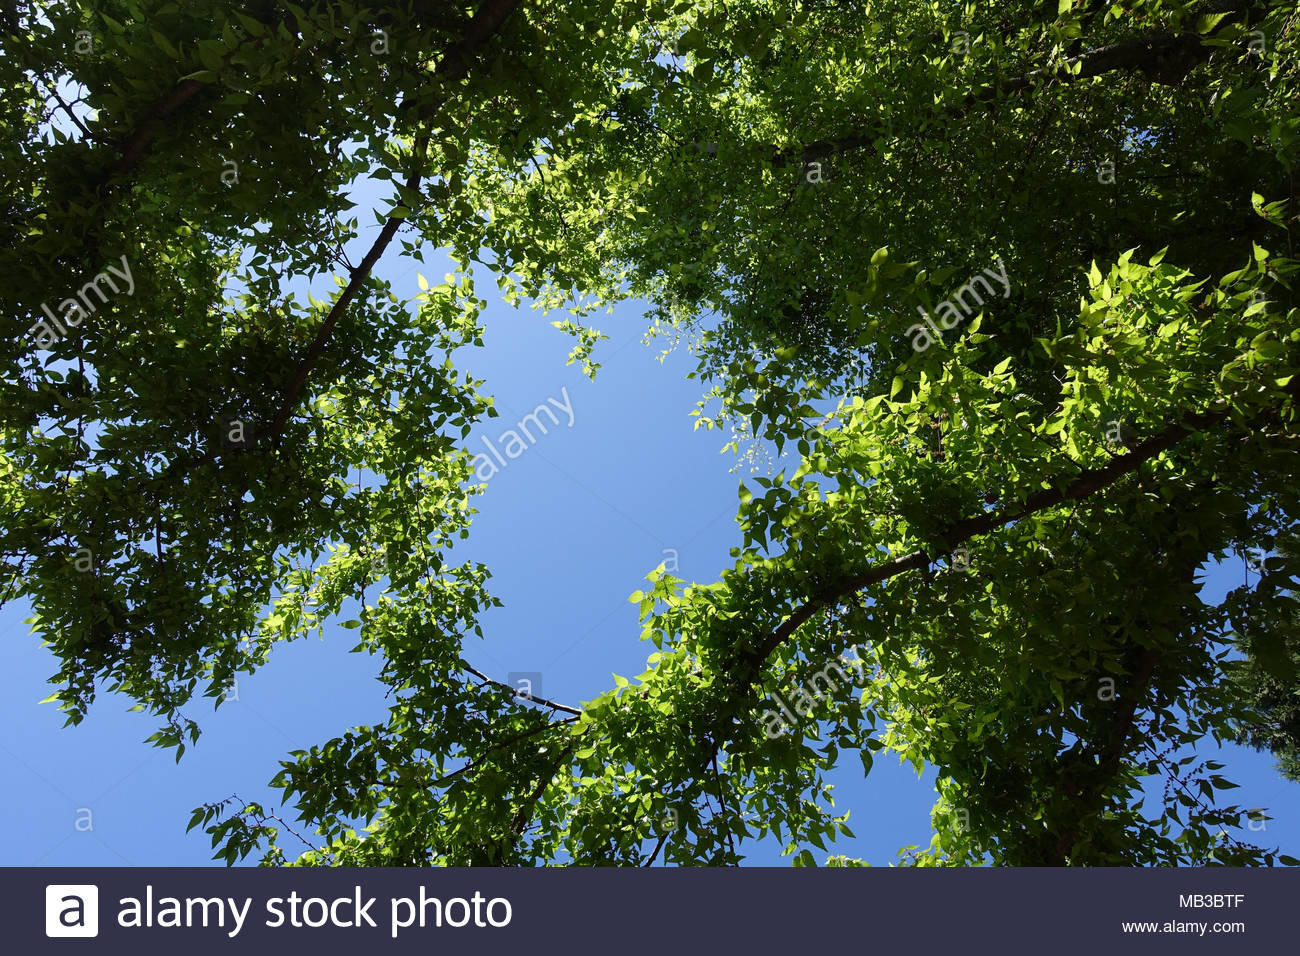 Looking Upward at Trees against a Blue Sky in Springtime Stock Photo